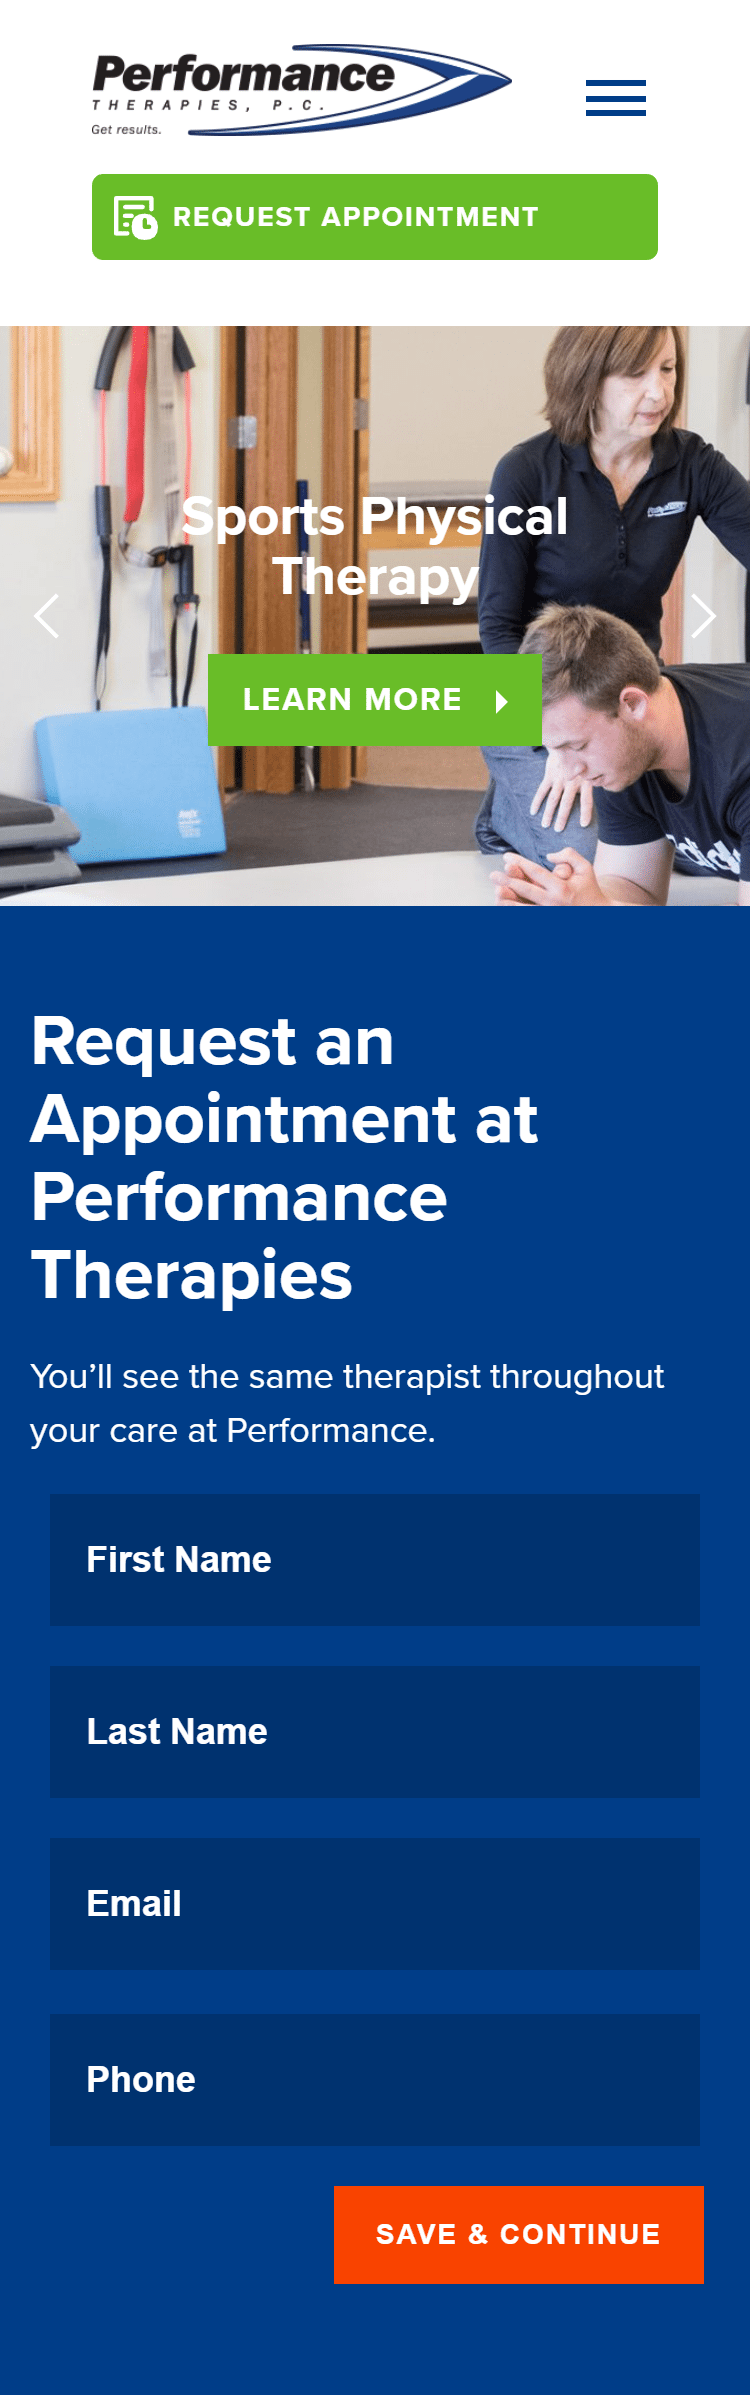 Performance therapies mobile